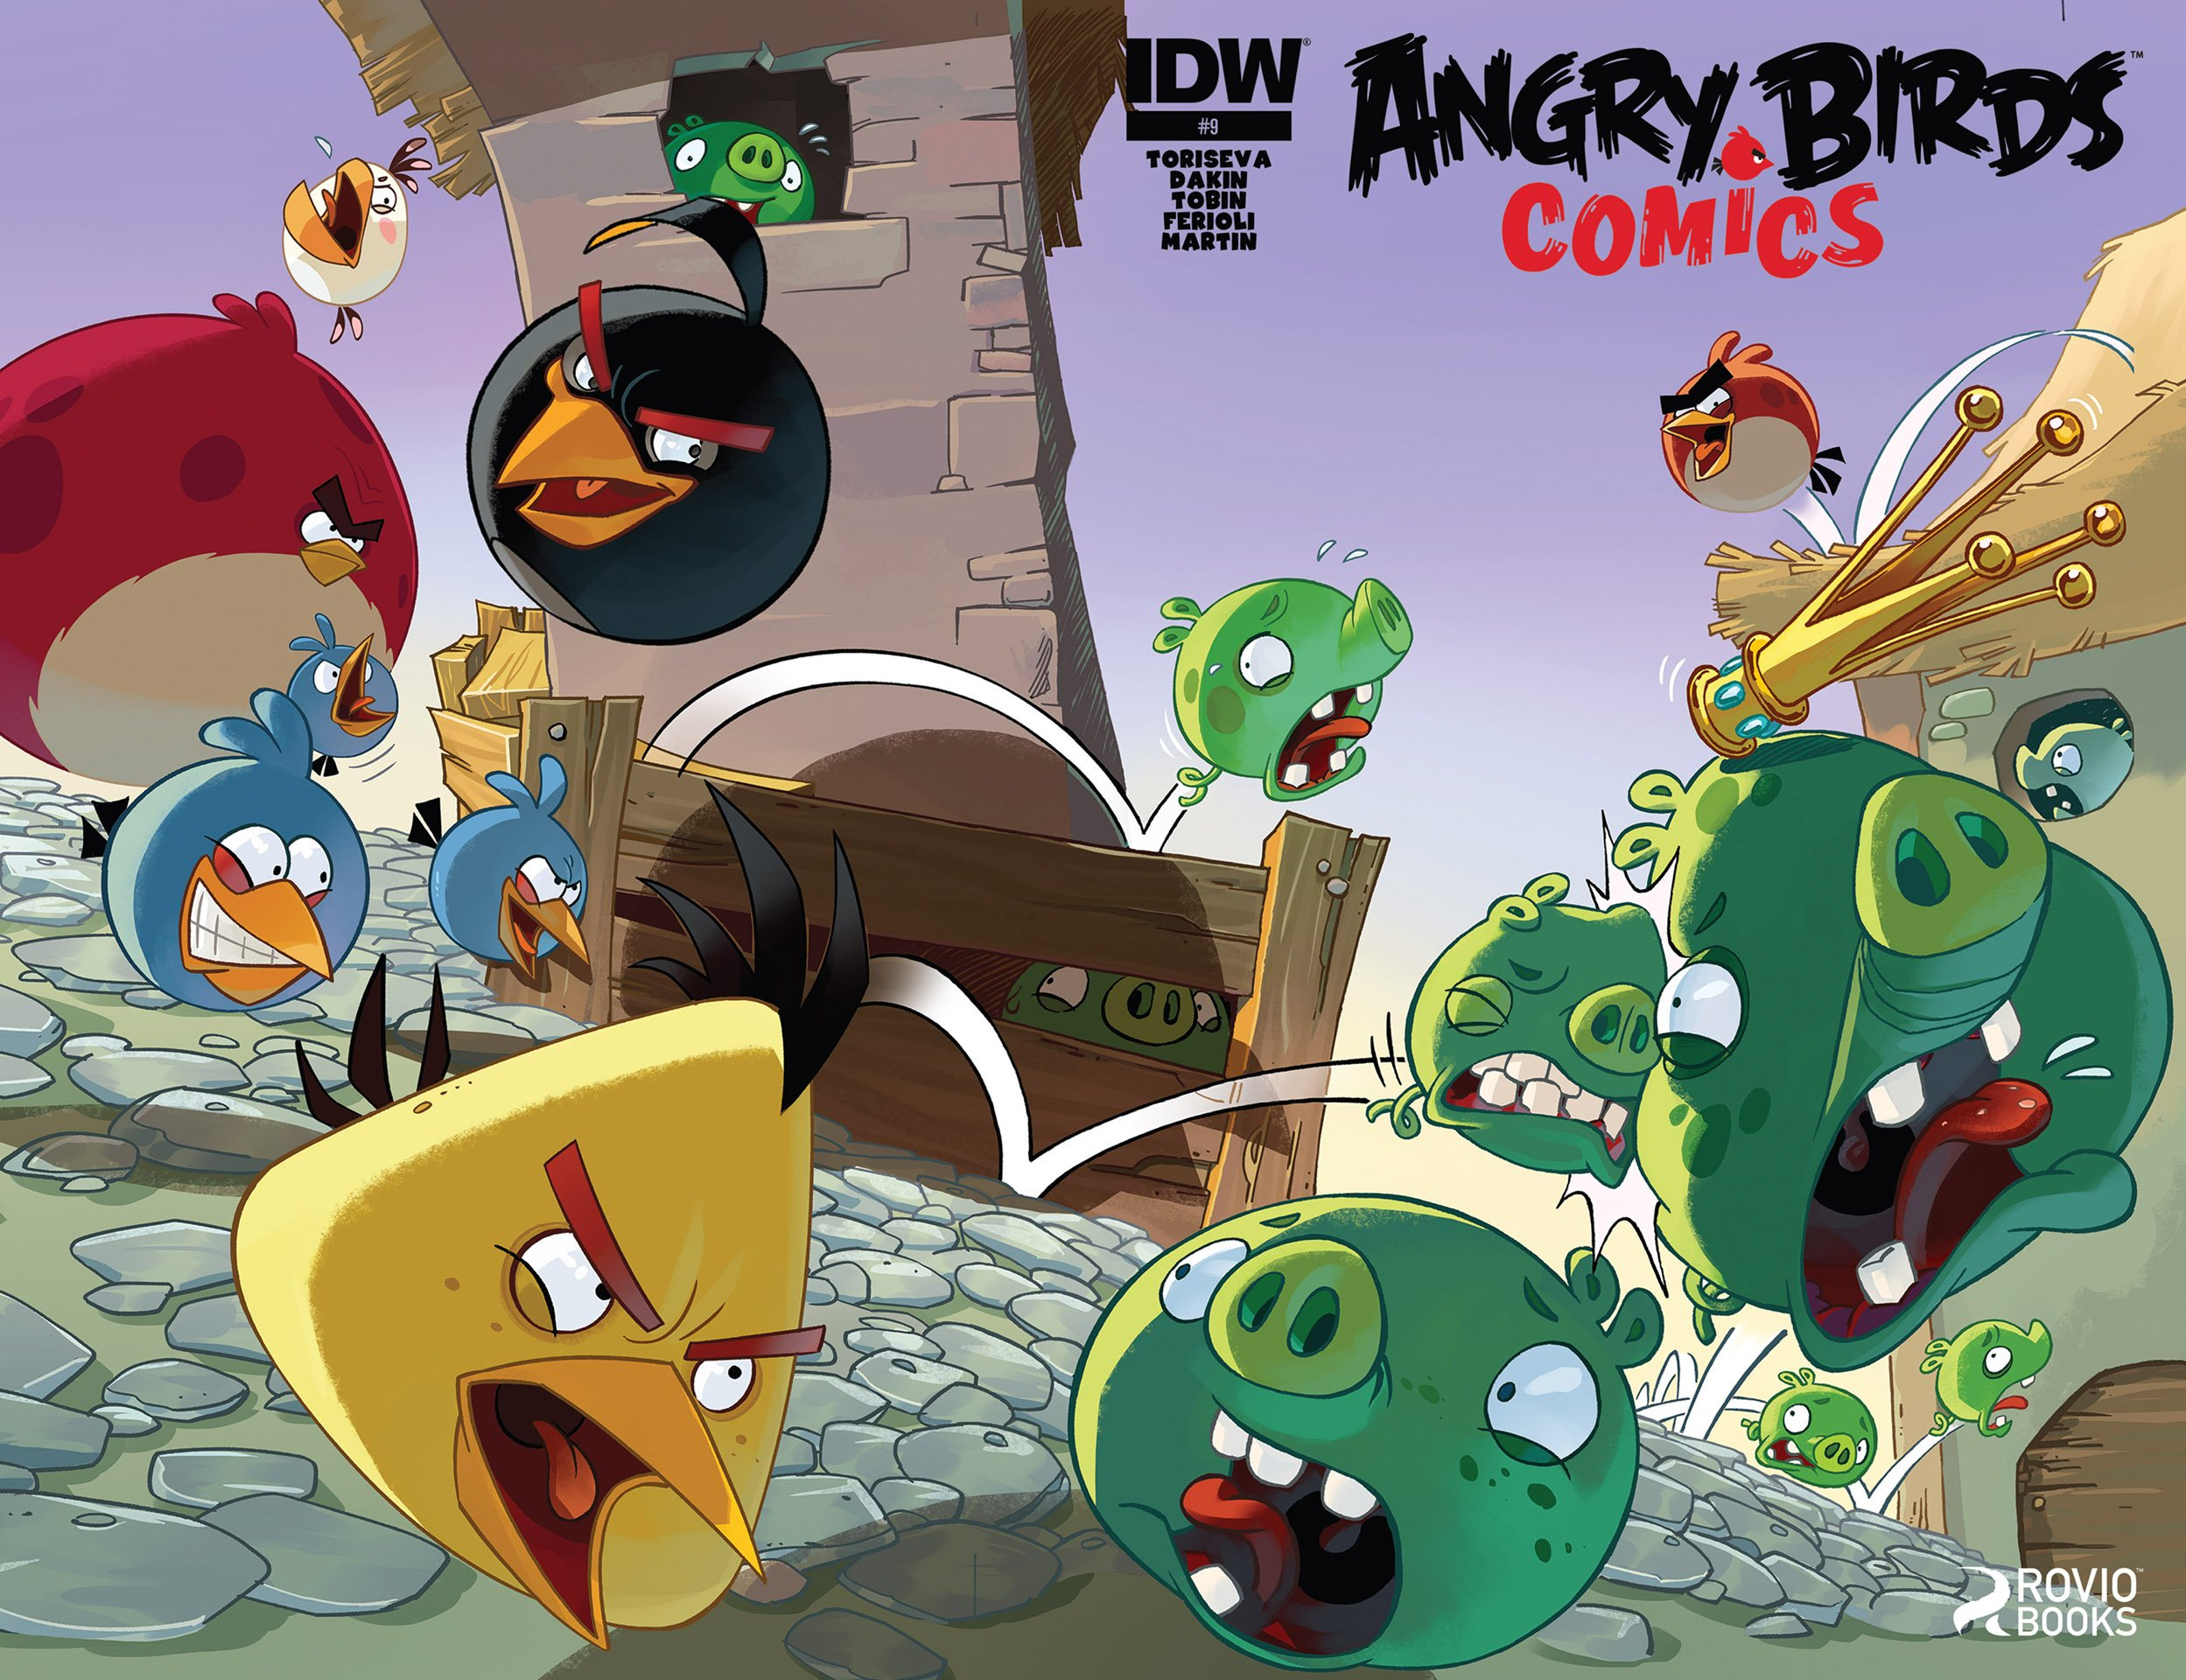 Angry Birds Comics 09 (March 2015)